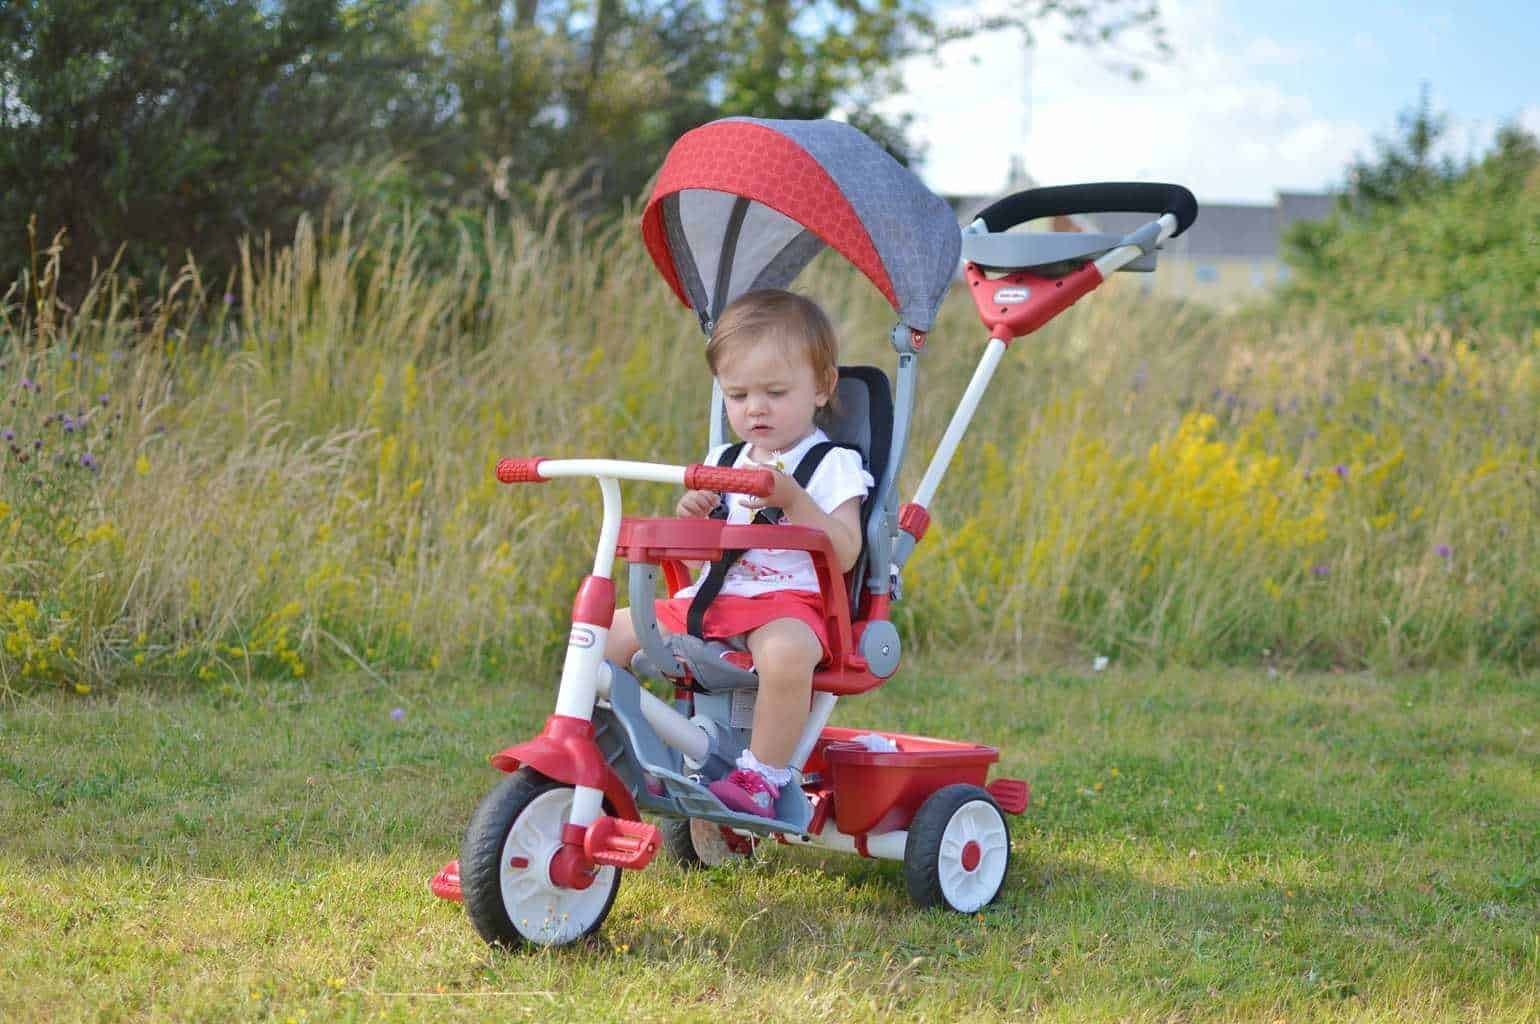 bf5b4cd6fee Unlock the Adventure with Little Tikes Trikes   Boo Roo and Tigger Too